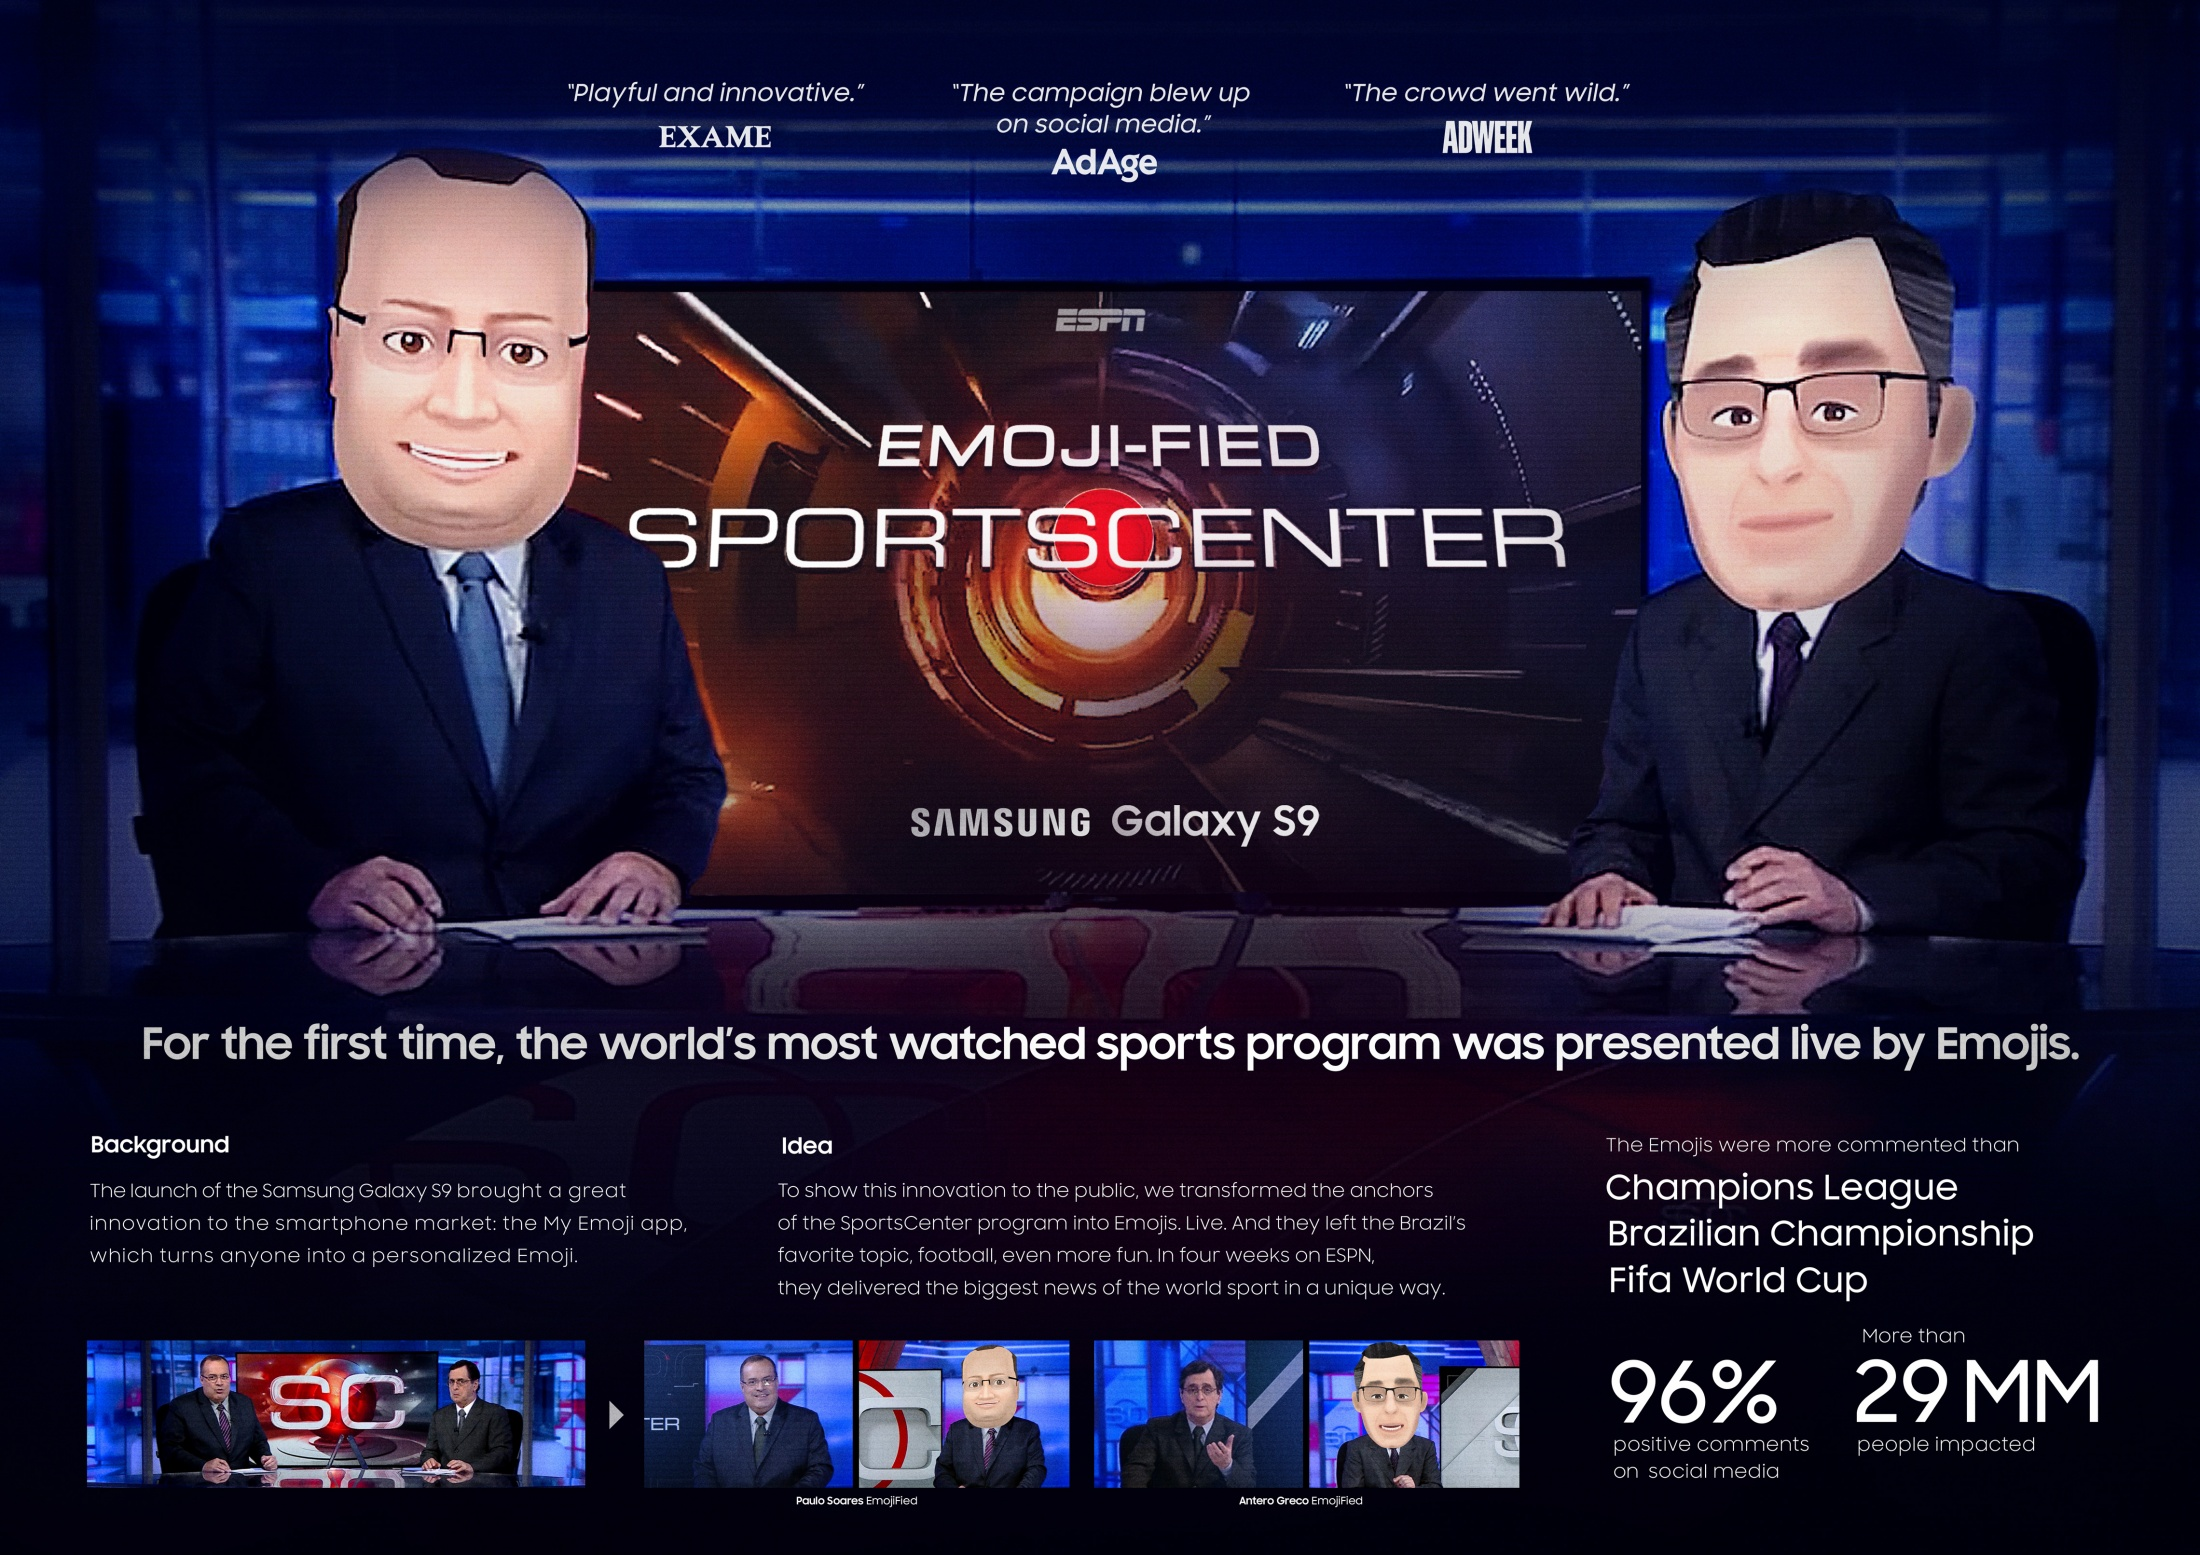 Thumbnail for SportsCenter Emoji-fied